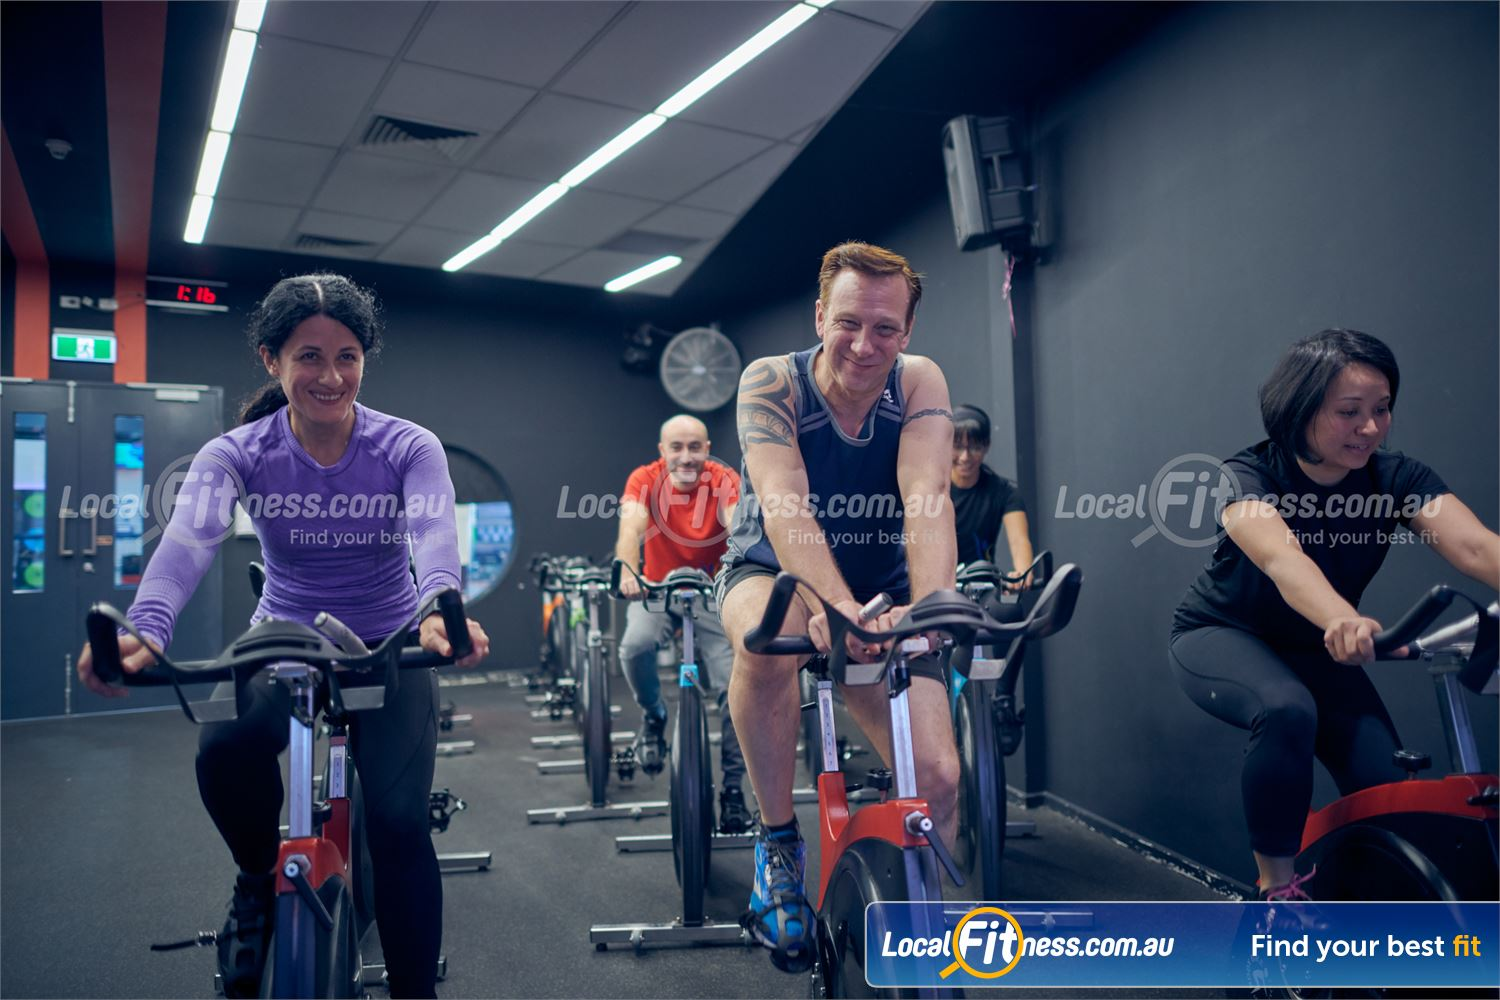 Maribyrnong Aquatic Centre Near Essendon West Our cycle instructors will motivate and challenge your RPM workout.